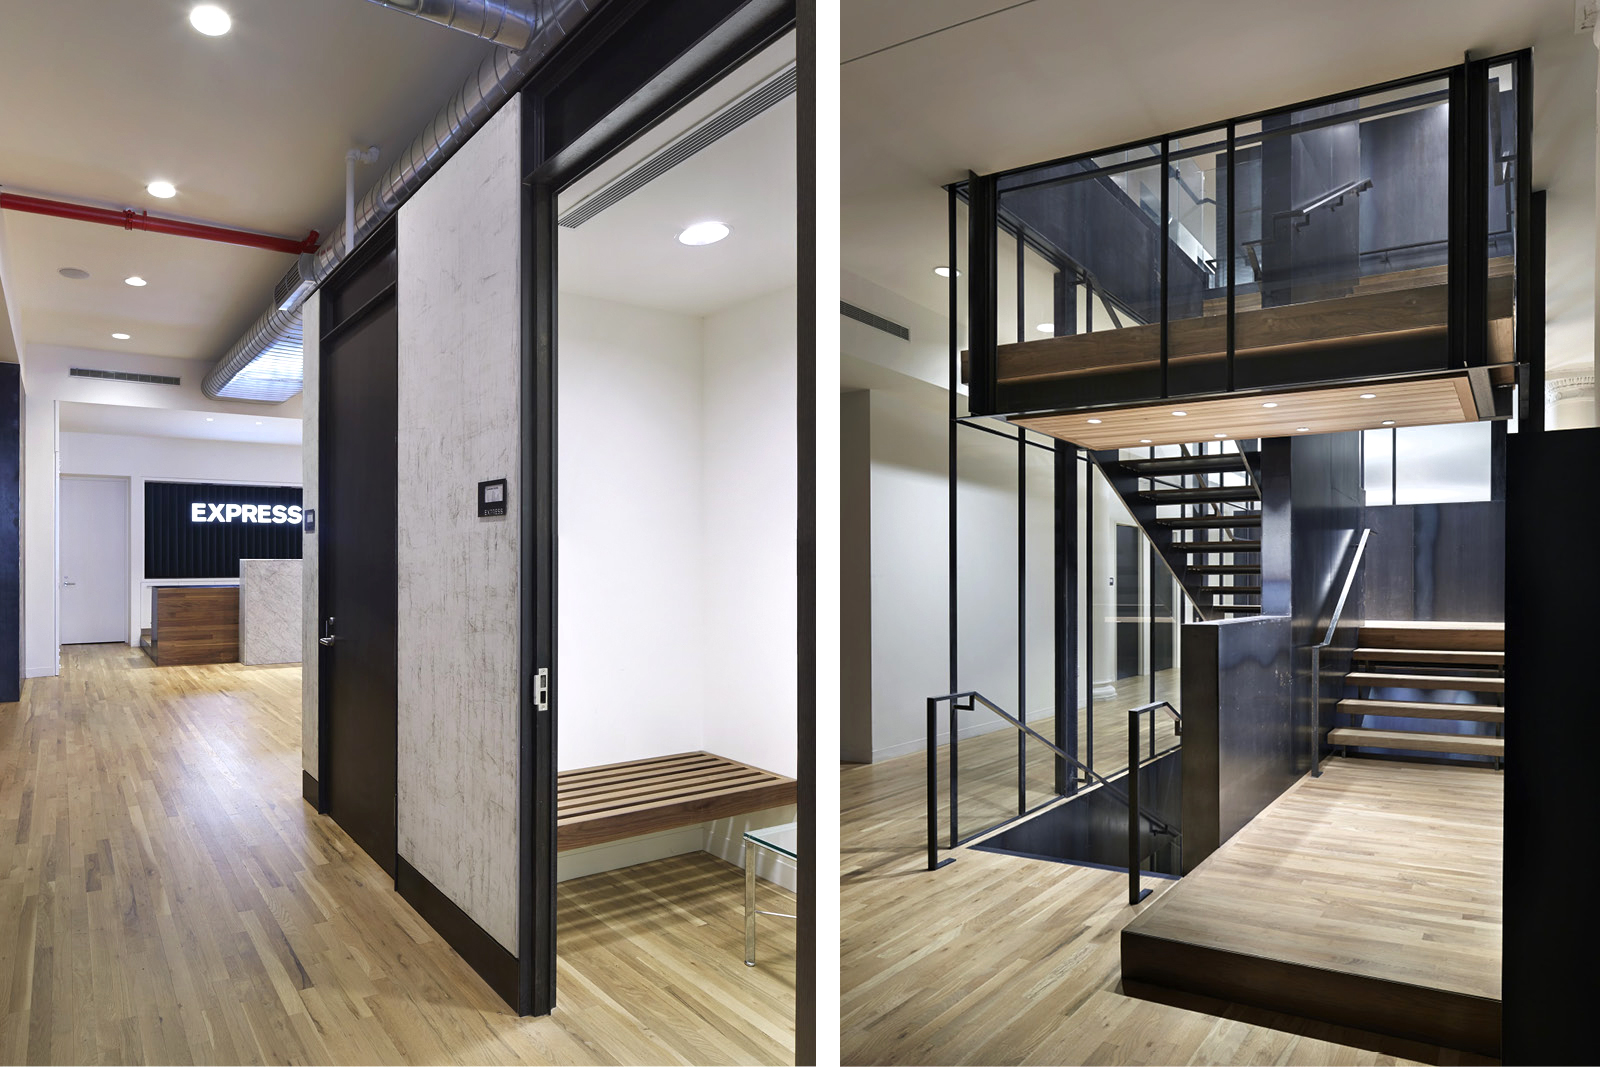 res4-resolution-4-architecture-modern-commercial-express-office-design-studio-interior-13.jpg